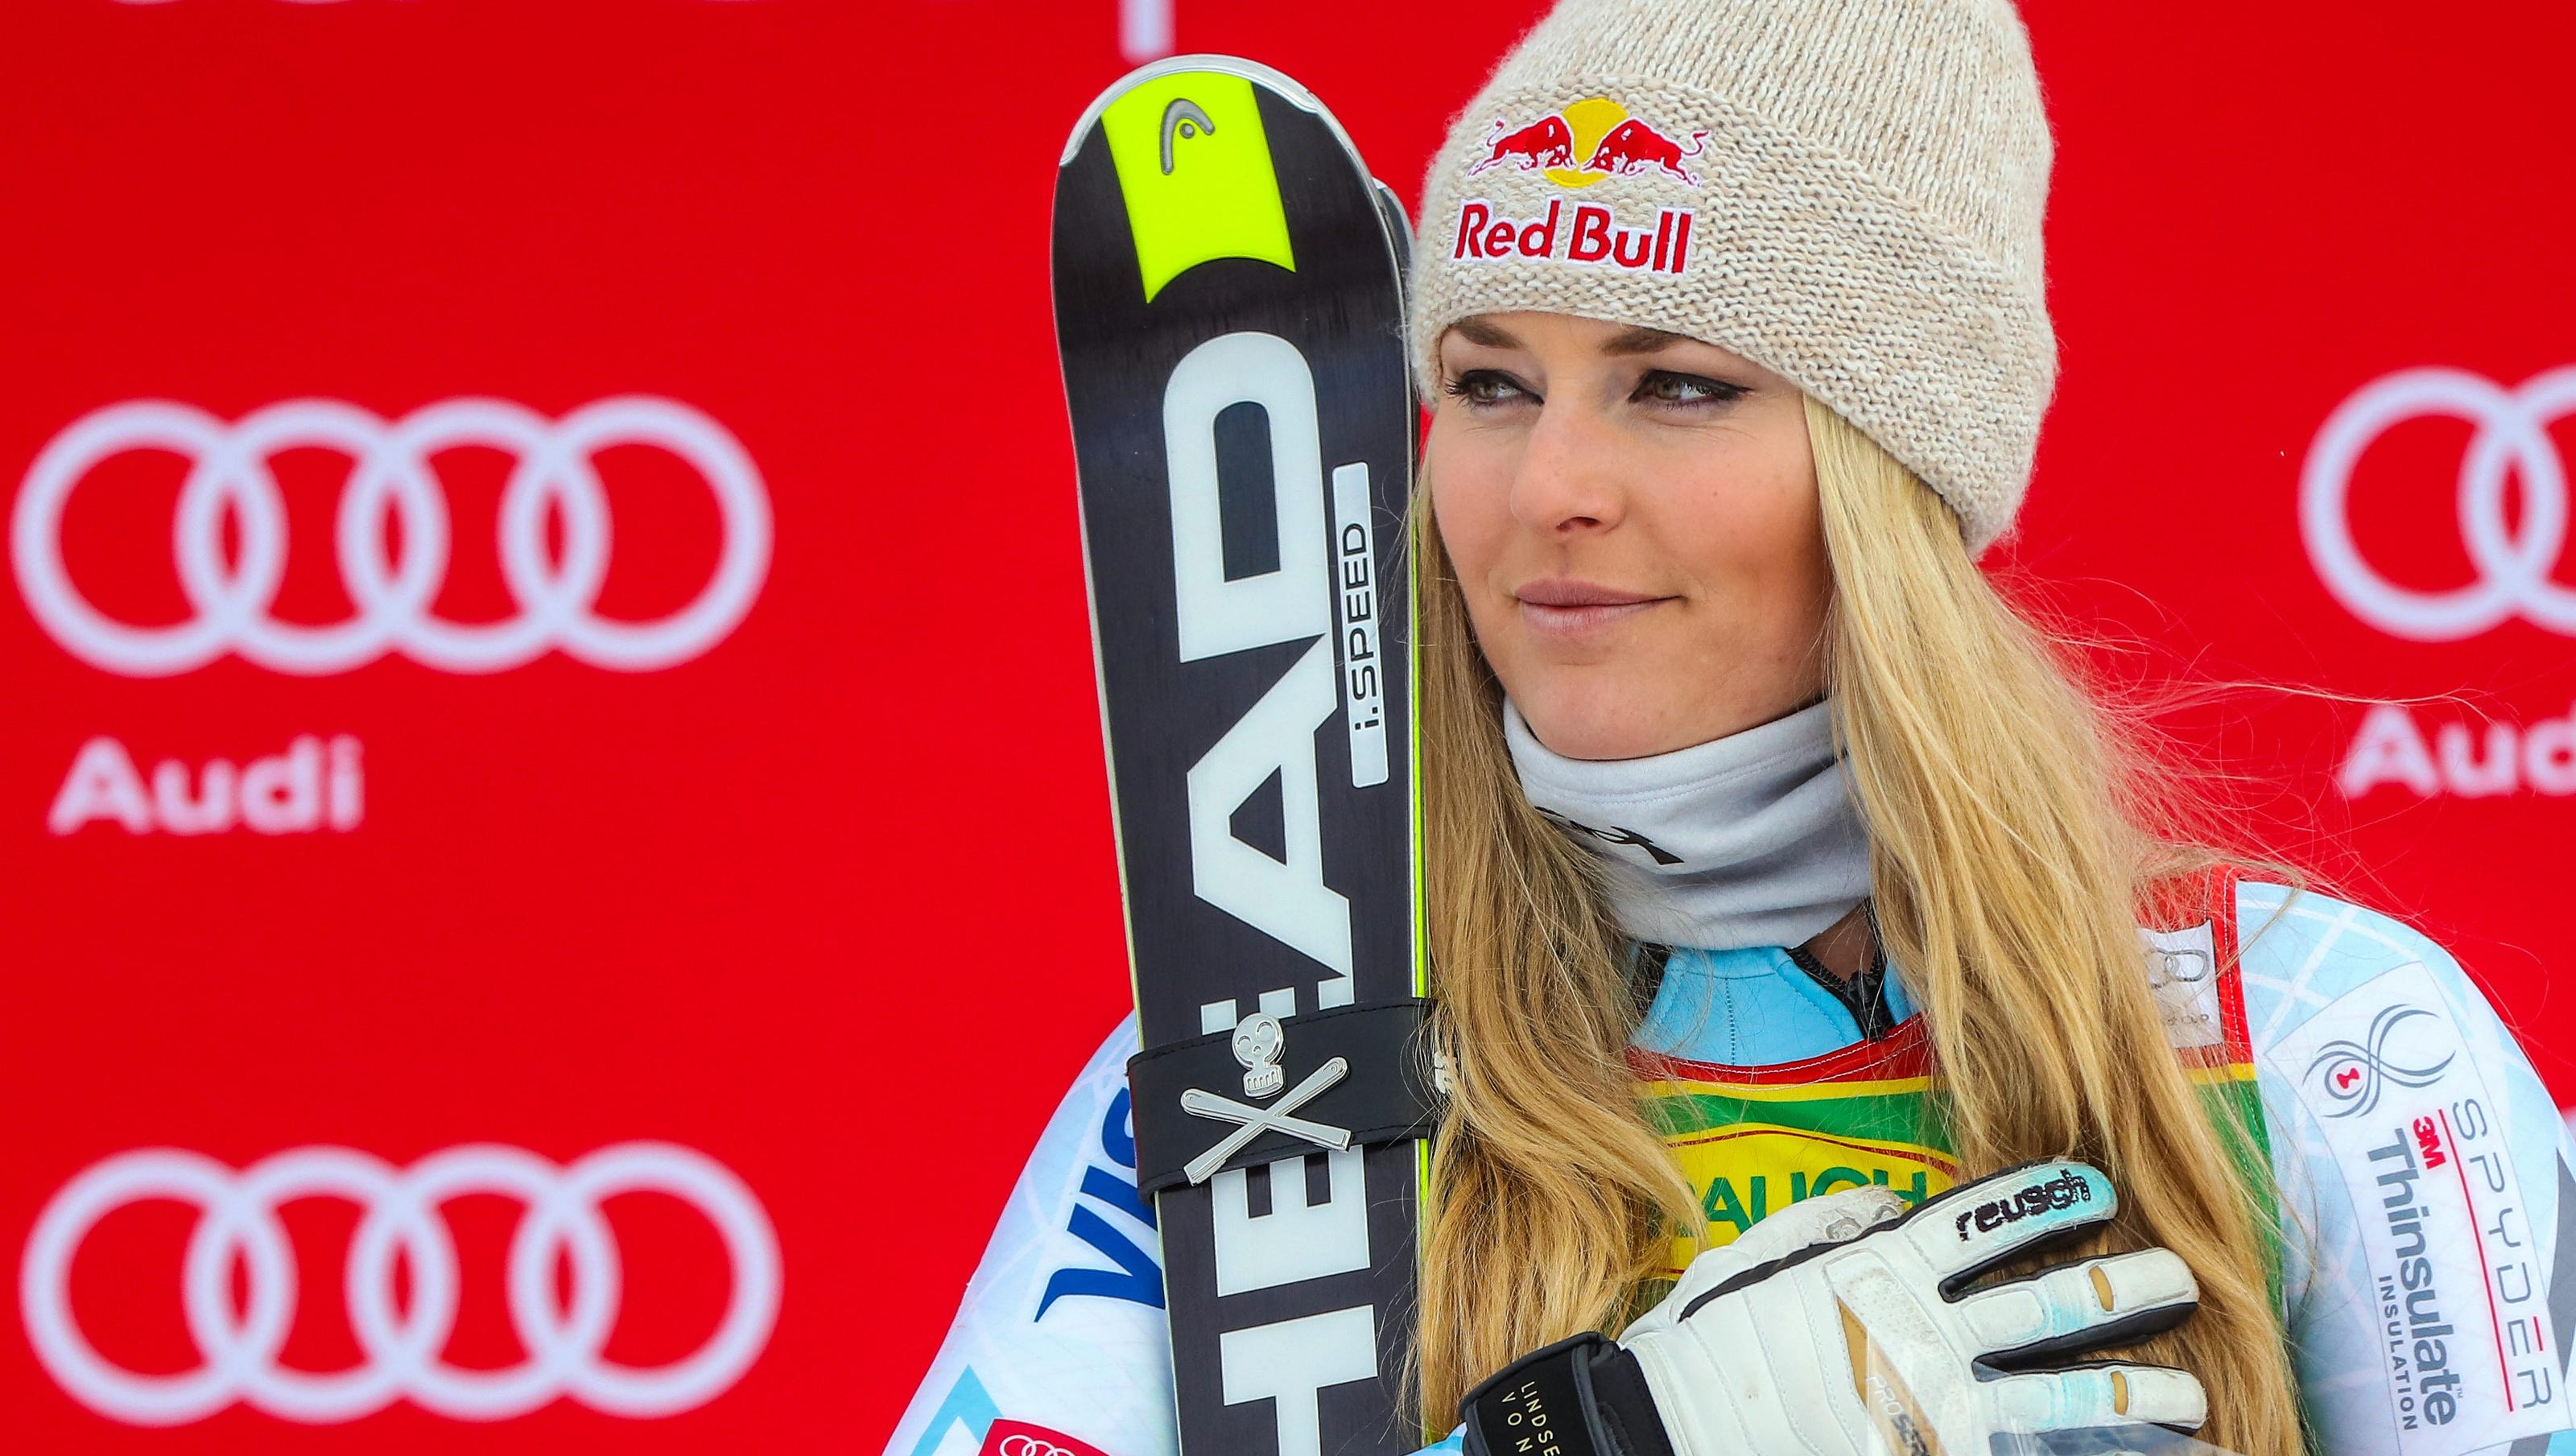 Lindsey Vonn responds to leak of nude photos of herself